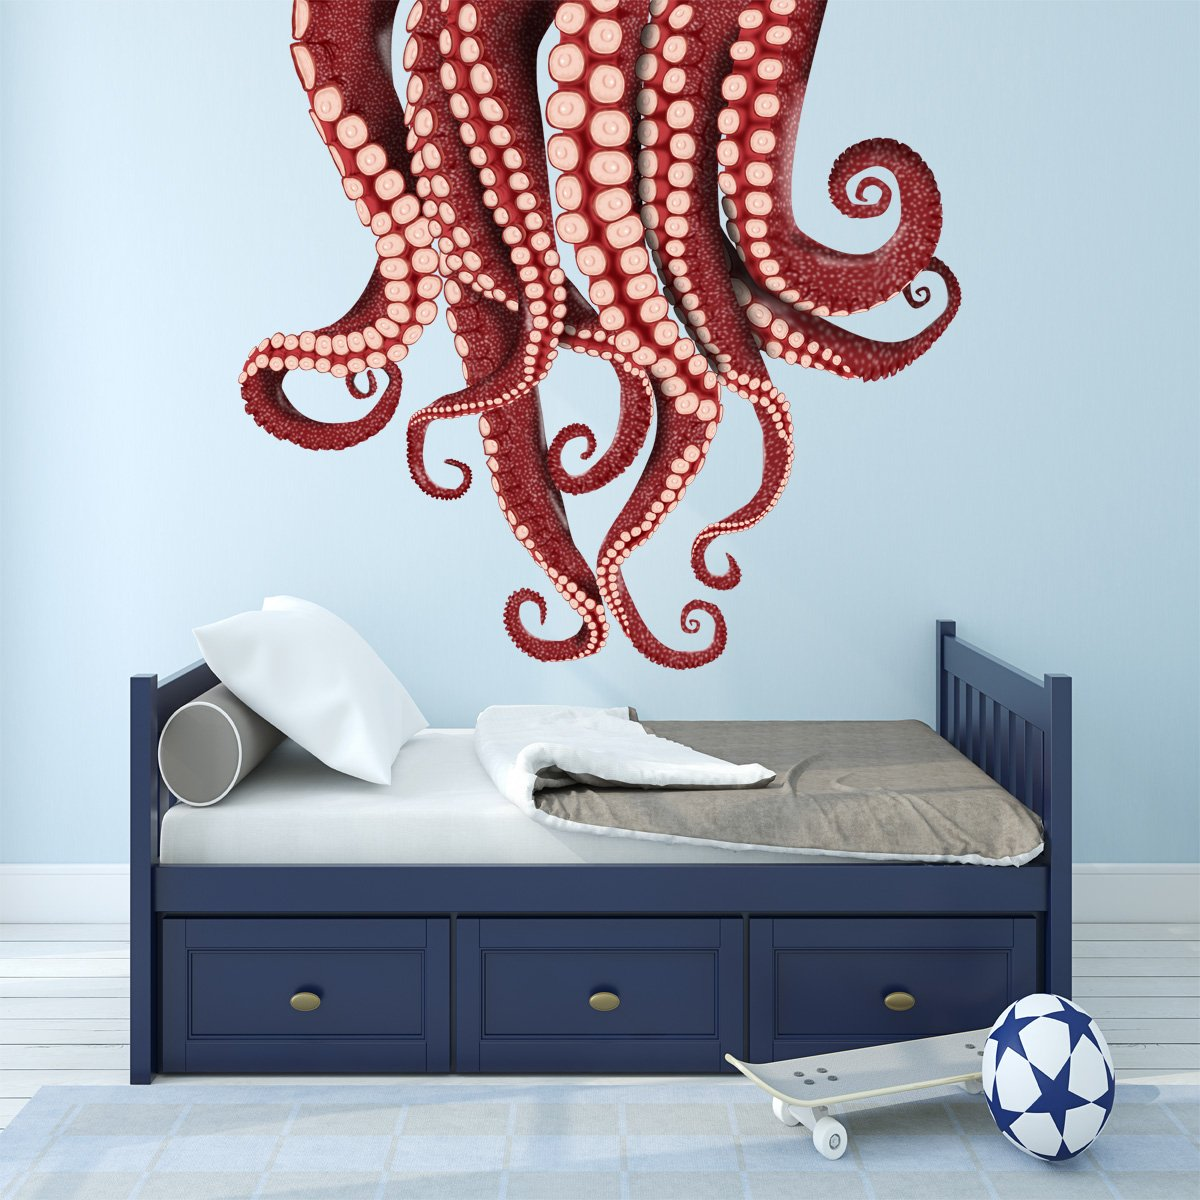 VWAQ Kraken Wall Sticker - Vinyl Octopus Tentacles Decal - Sea Monster Decorations - NA05 - VWAQ Vinyl Wall Art Quotes and Prints